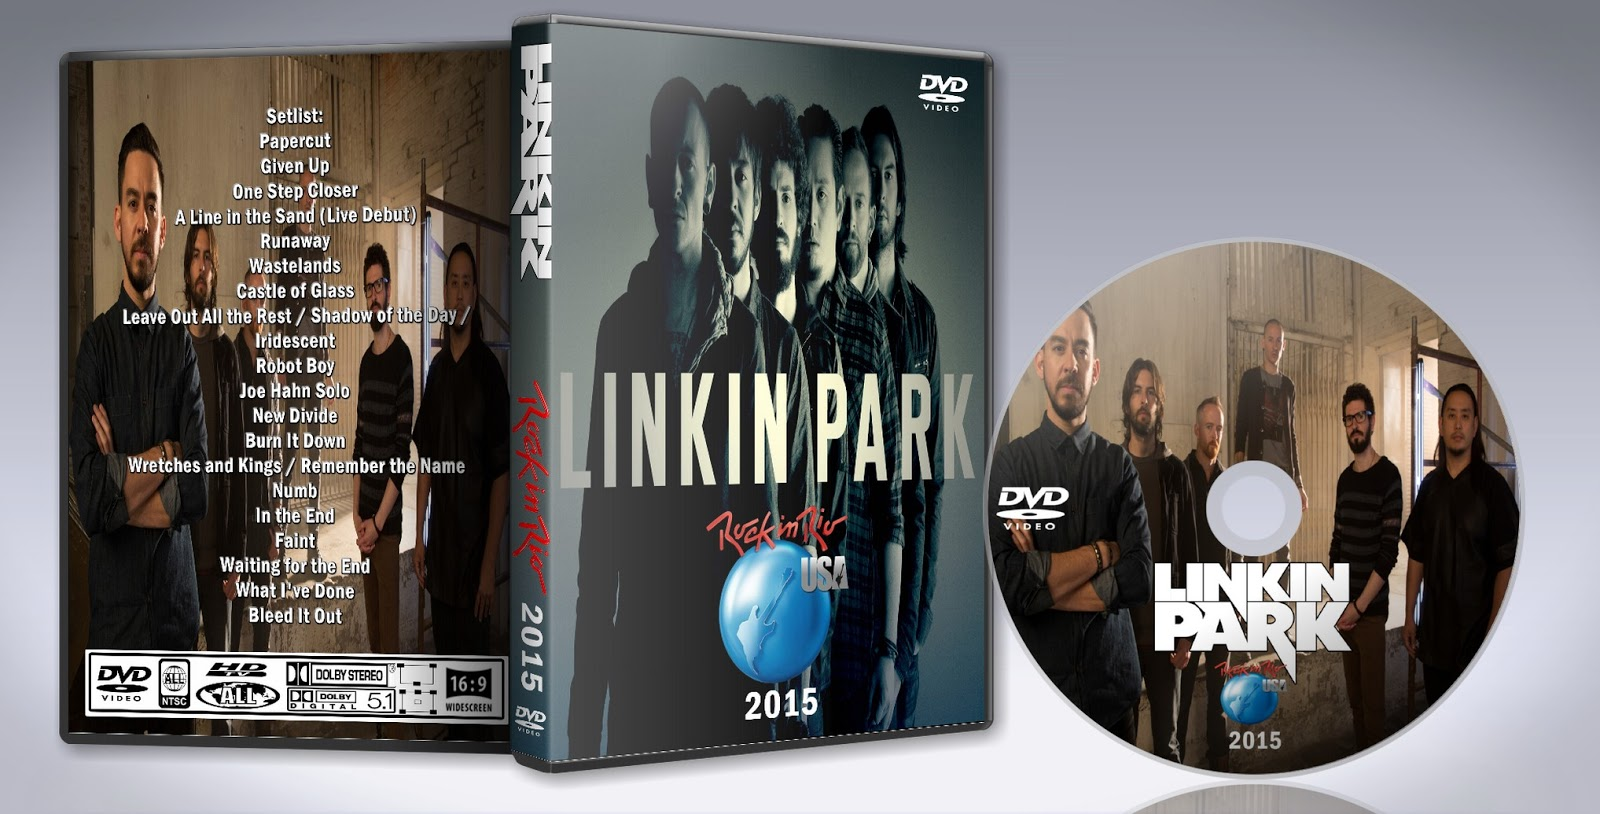 Deer5001RockCocert : Linkin Park - 2015 - Rock In Rio USA